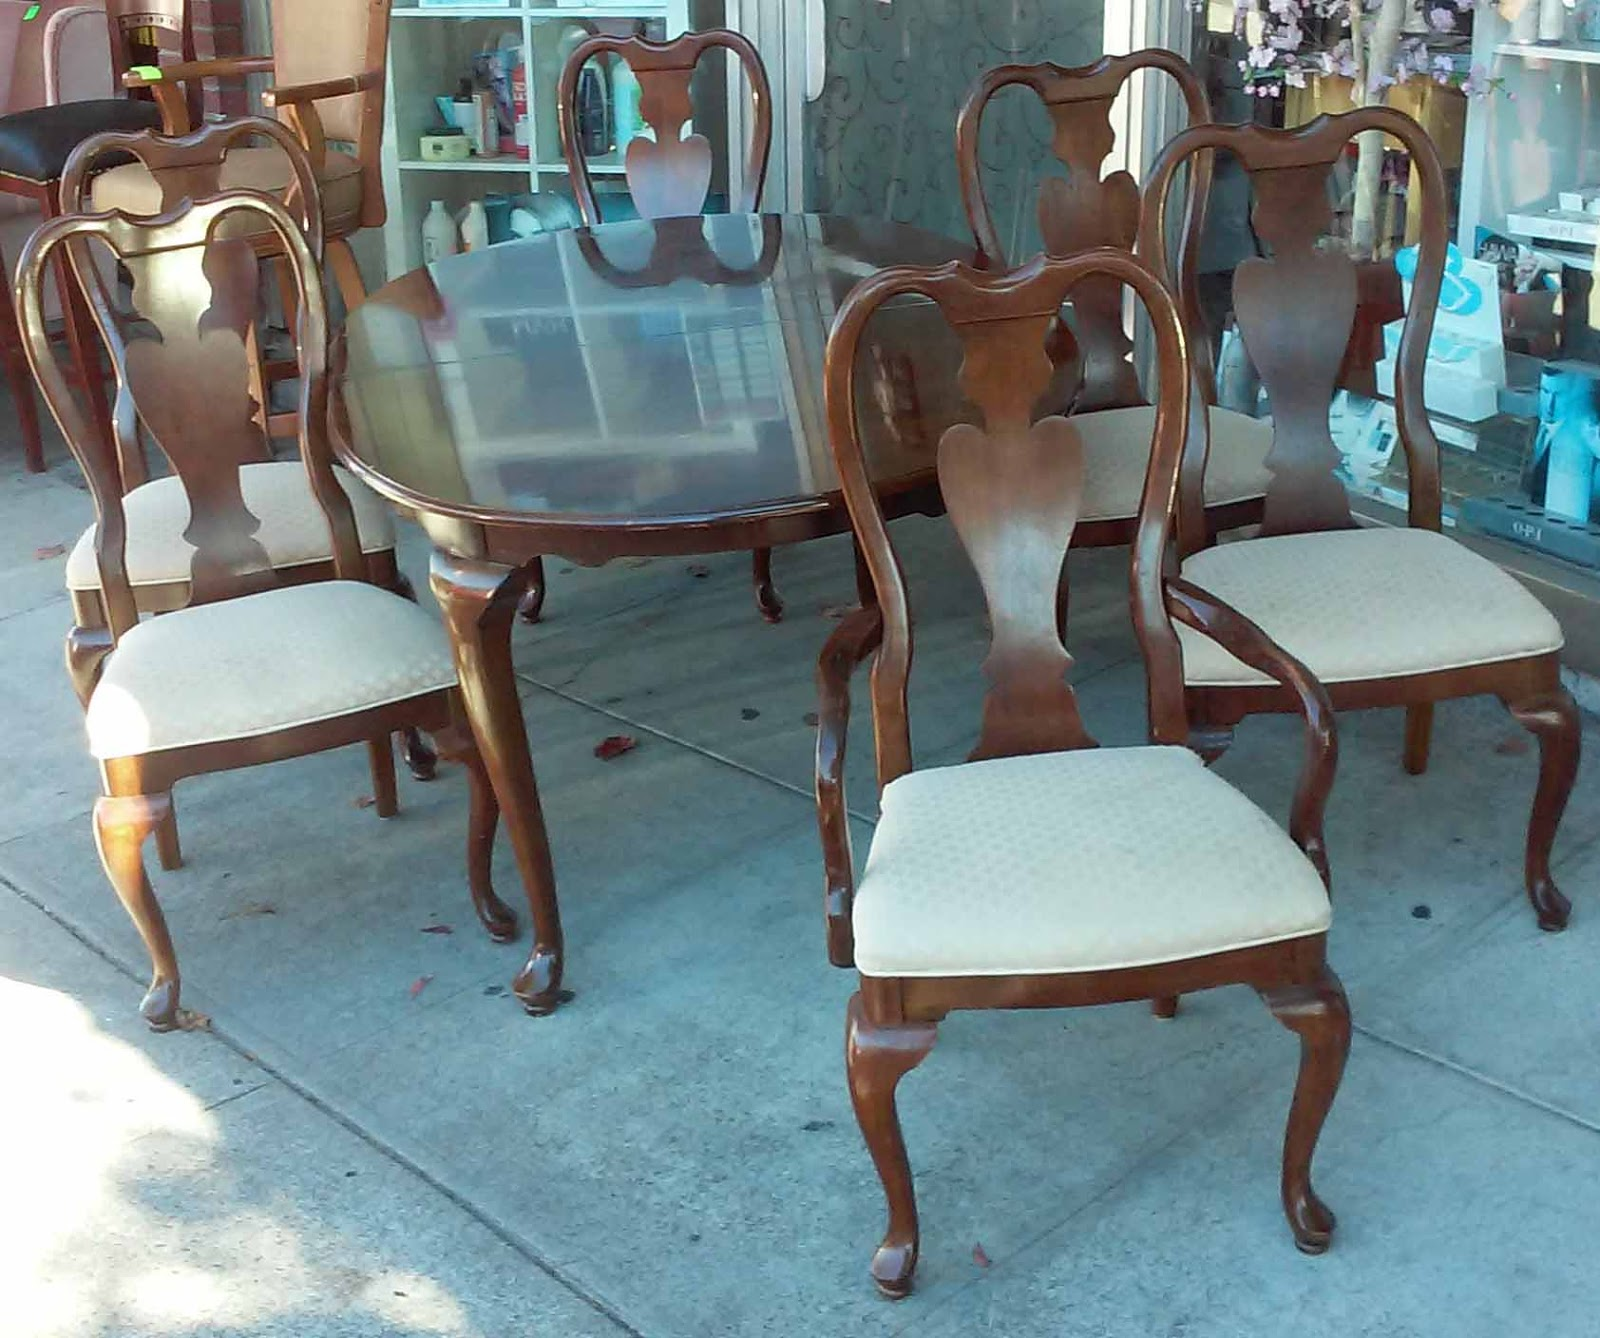 UHURU FURNITURE & COLLECTIBLES: SOLD Mahogany French Style